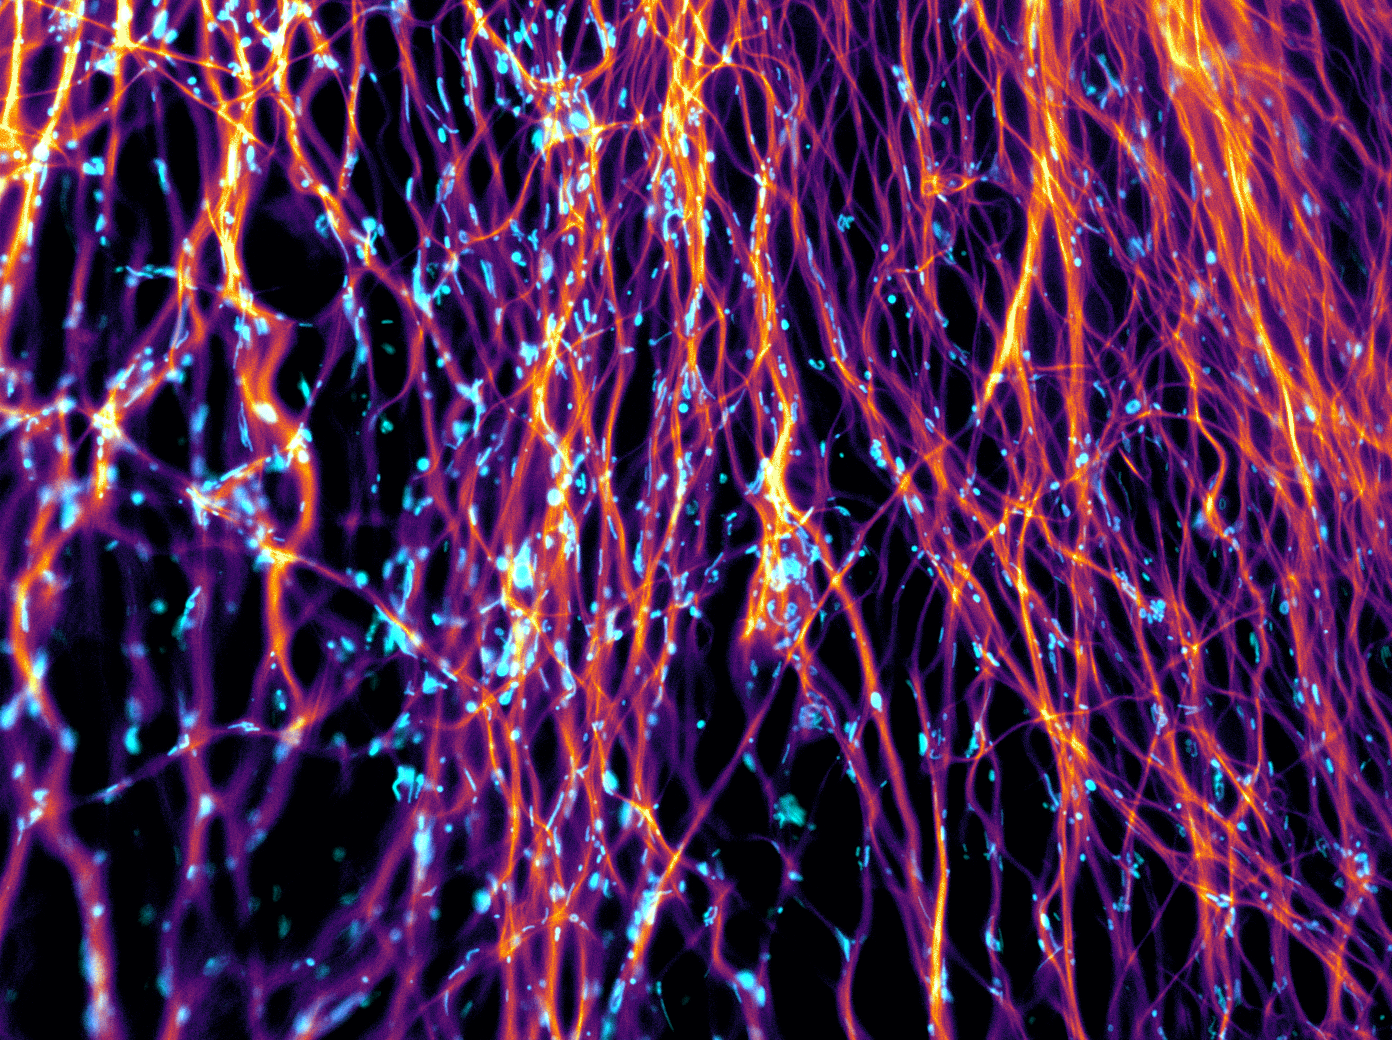 Flowing neurons, Lucia Wunderlich, University of Cambridge